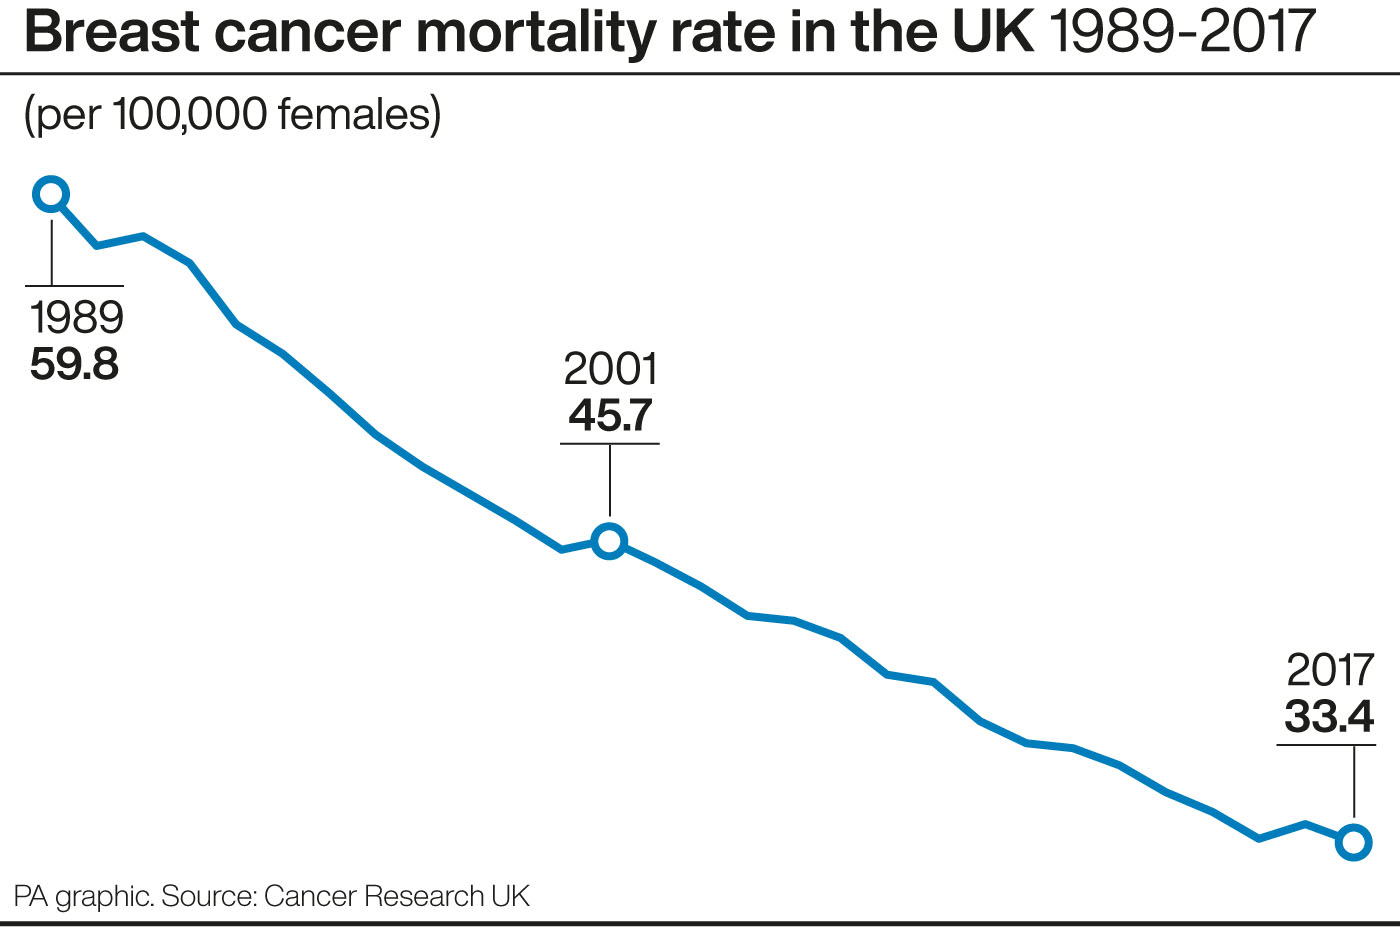 Breast cancer mortality rates